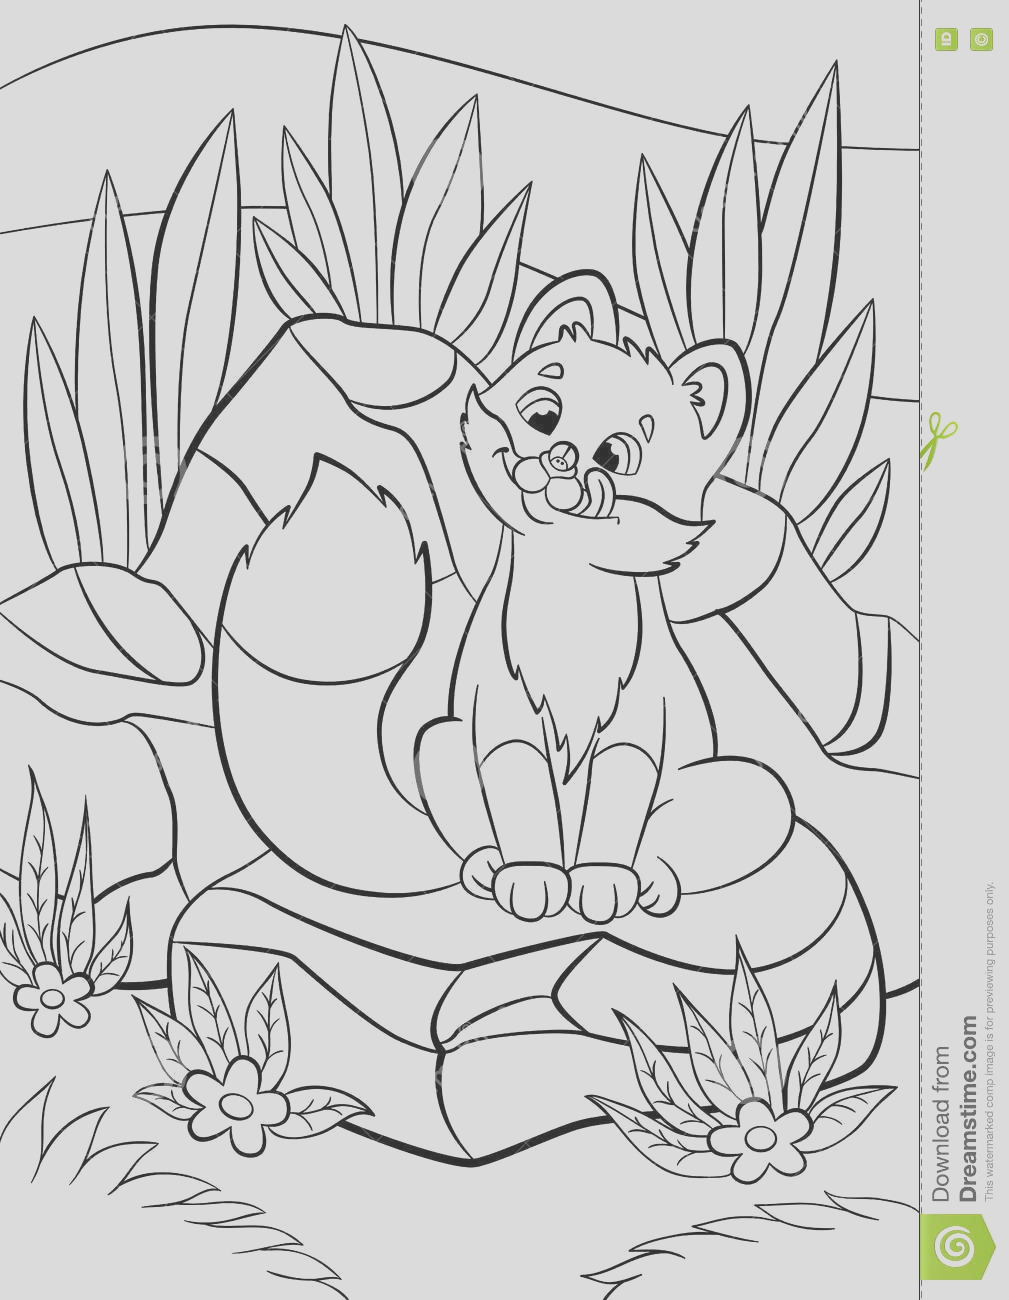 stock illustration coloring pages wild animals little cute baby fox looks bug his nose smiles there stones grass around image